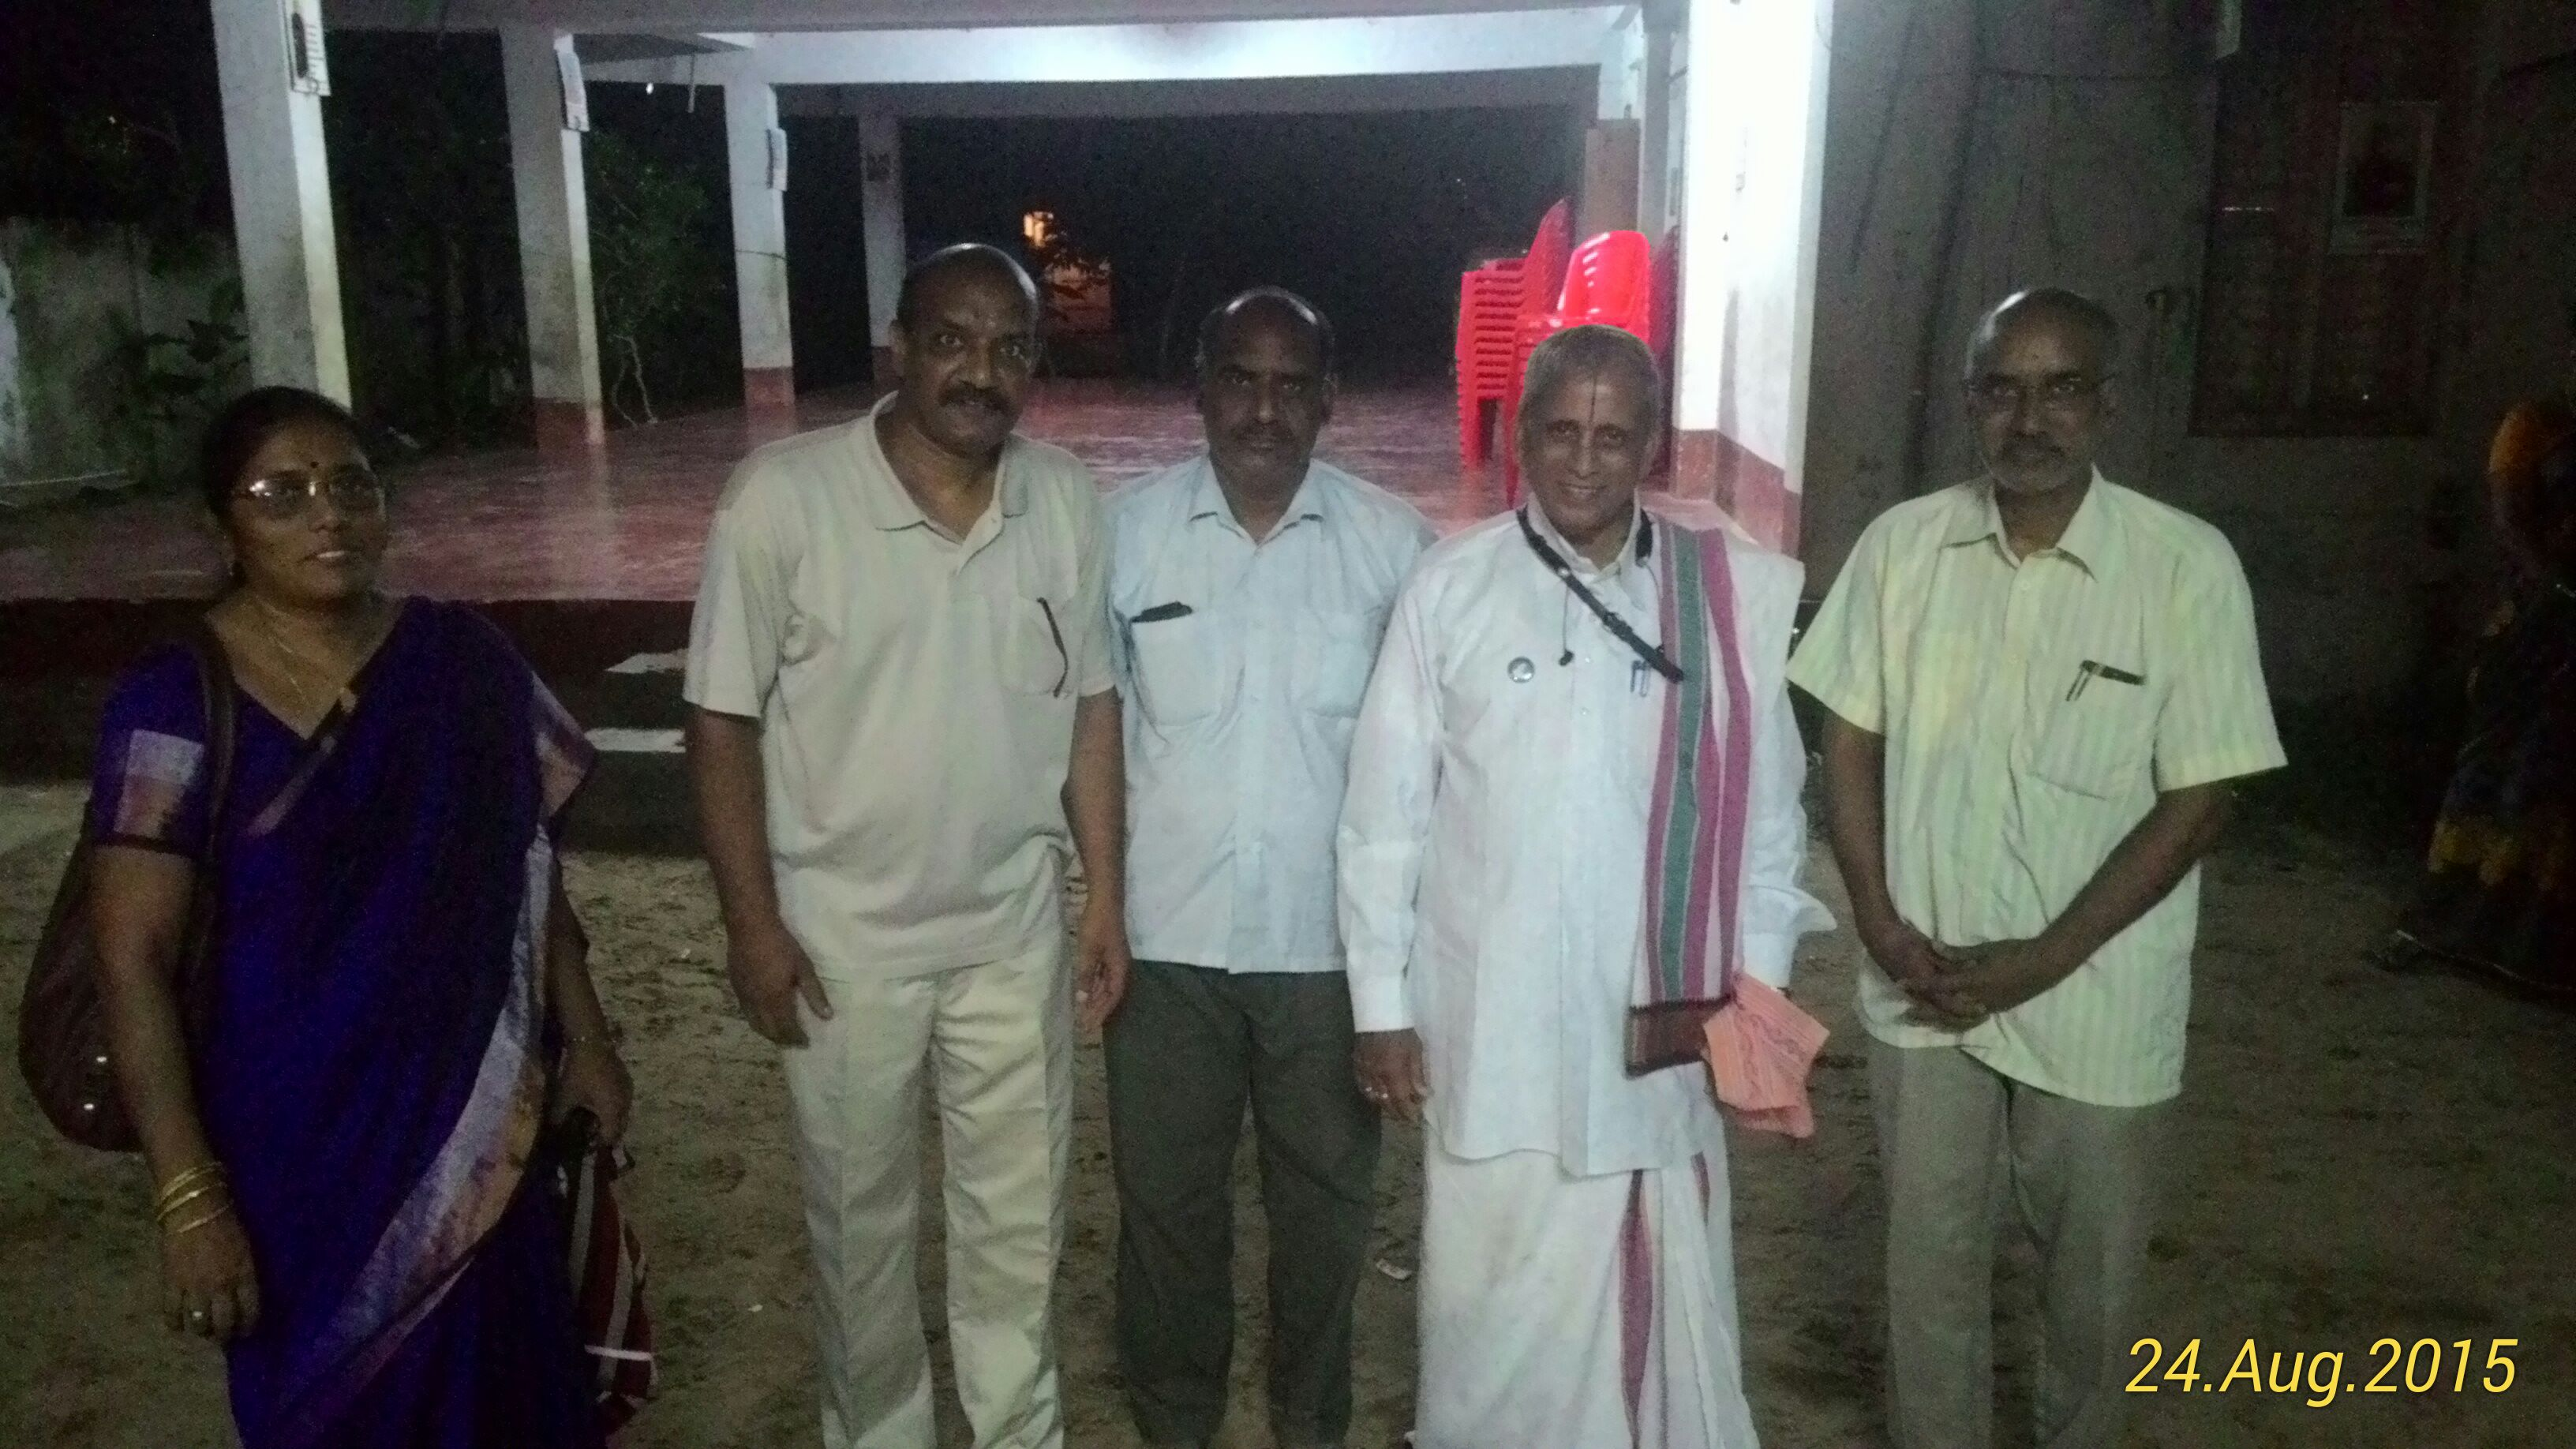 Dr Ekkirala Ananthakrishna garu with the members of the samithi at the end of the camp